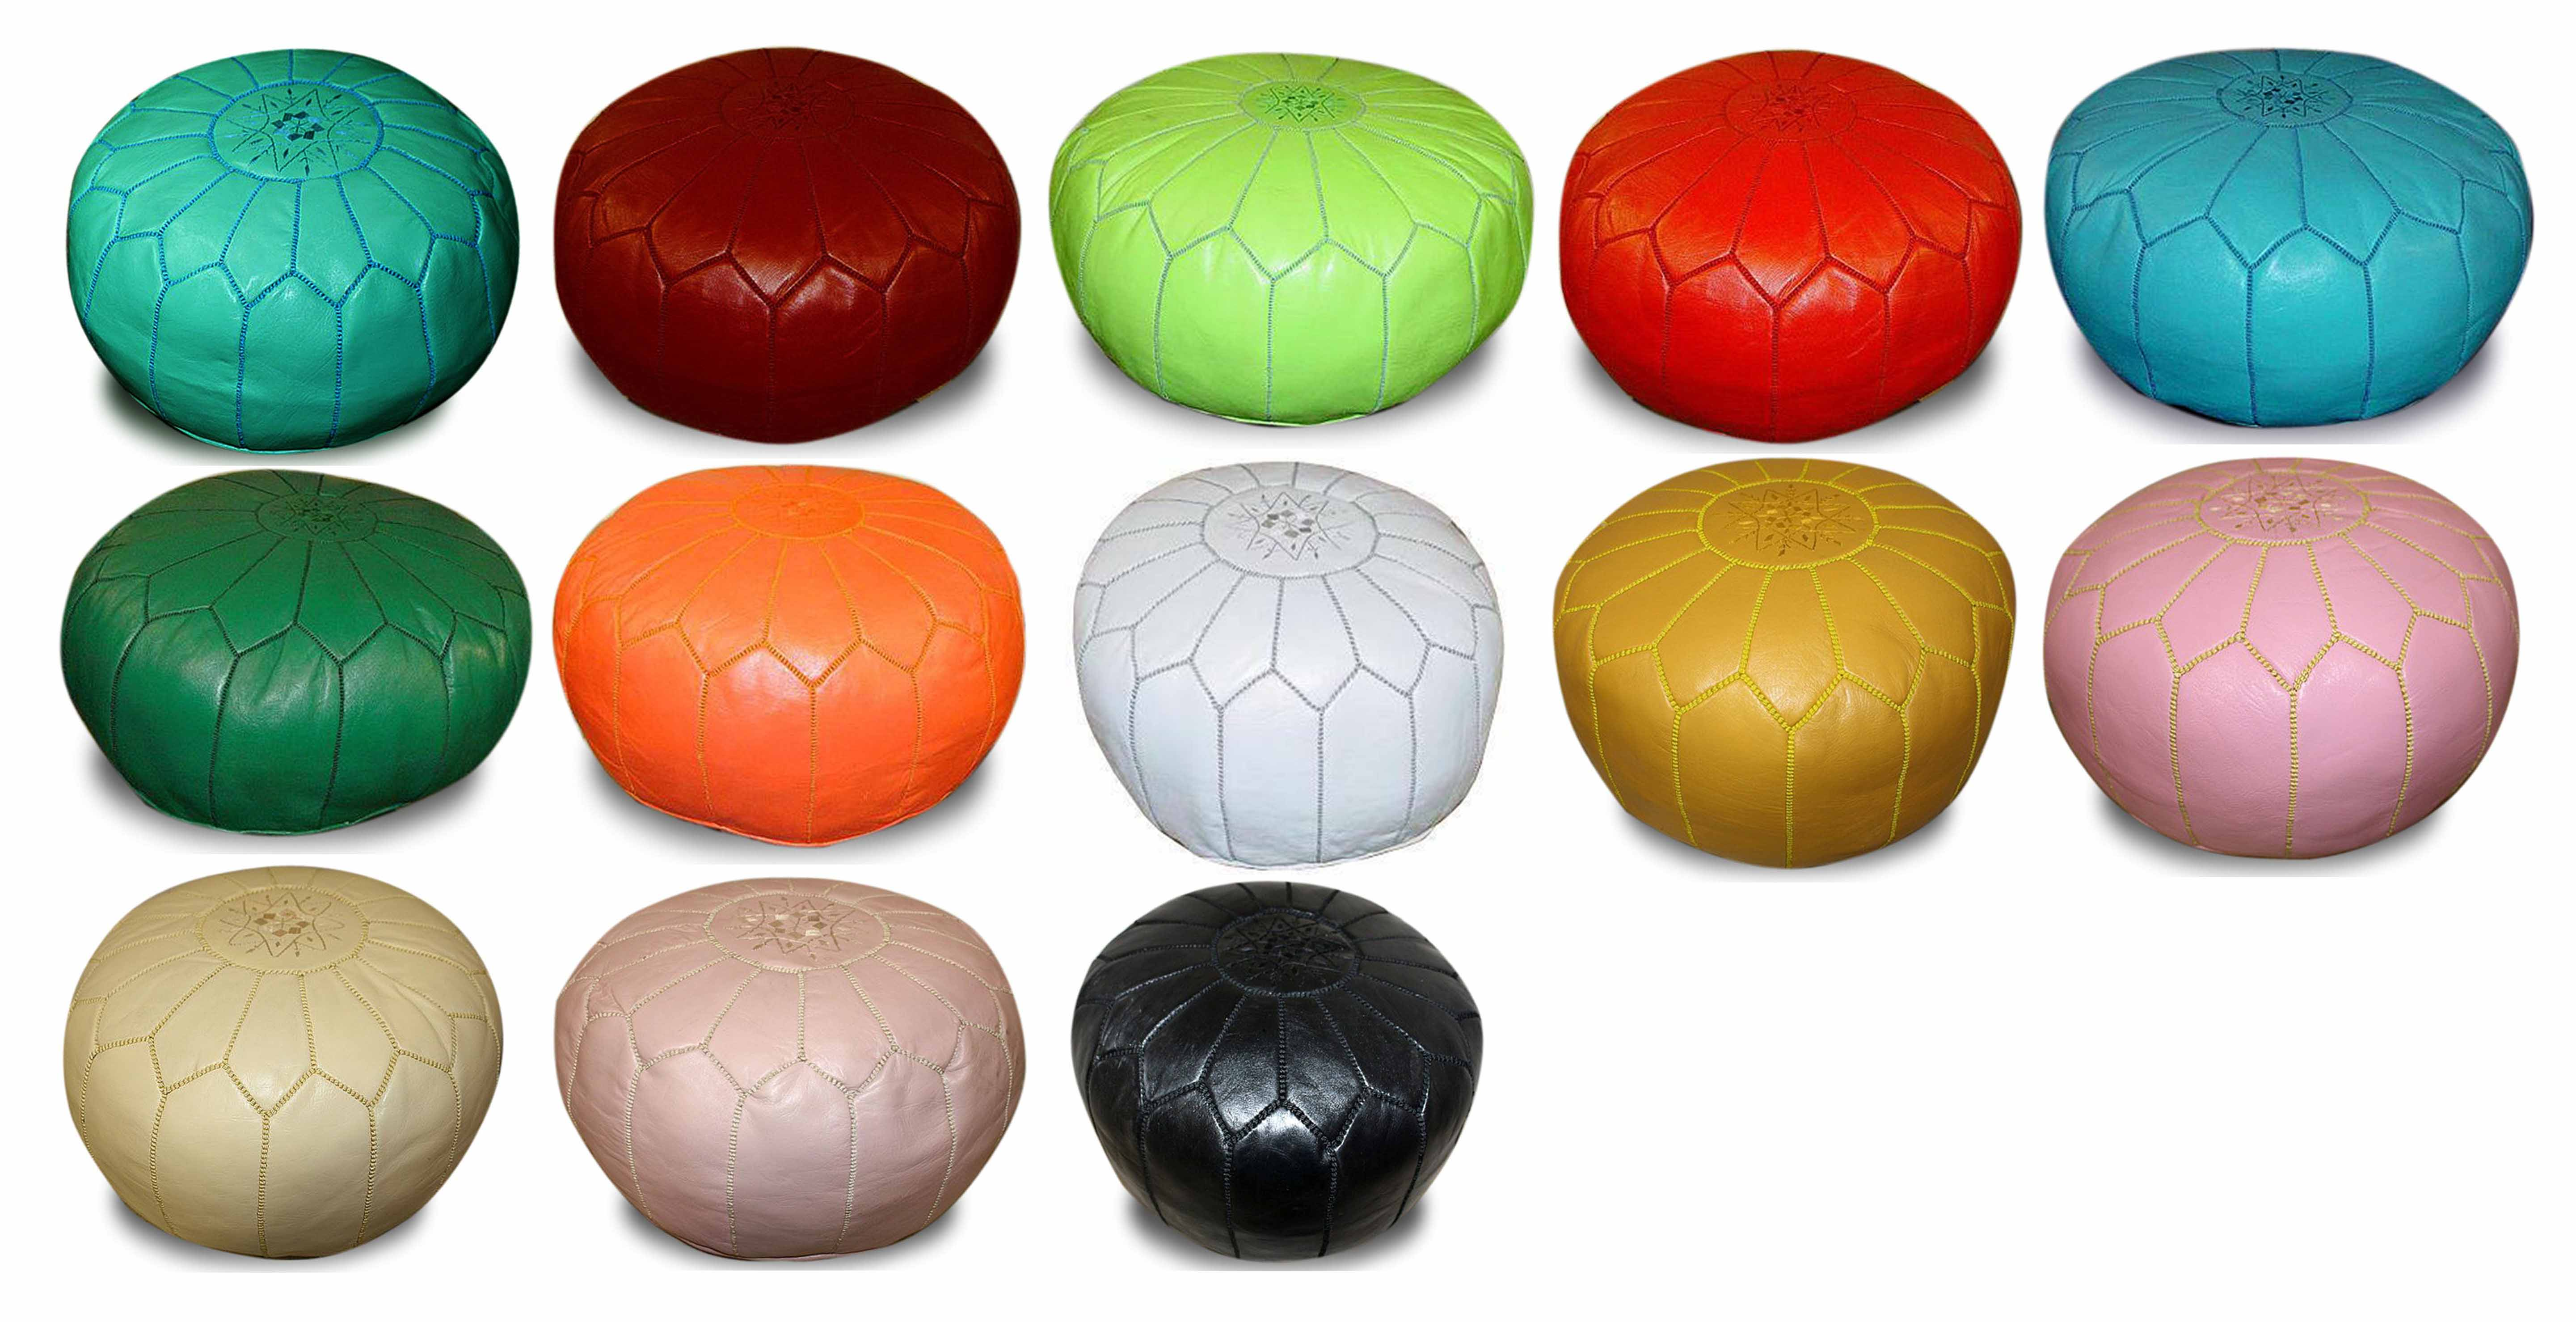 Moroccan round leather ottoman, Moroccan leather ottoman, Moroccan leather pouf, leather ottoman, leather pouf, ottoman, pouf, Moroccan pouf Los Angeles, Moroccan ottoman Los Angeles, round leather pouf, round leather ottoman, leather pouf ottoman